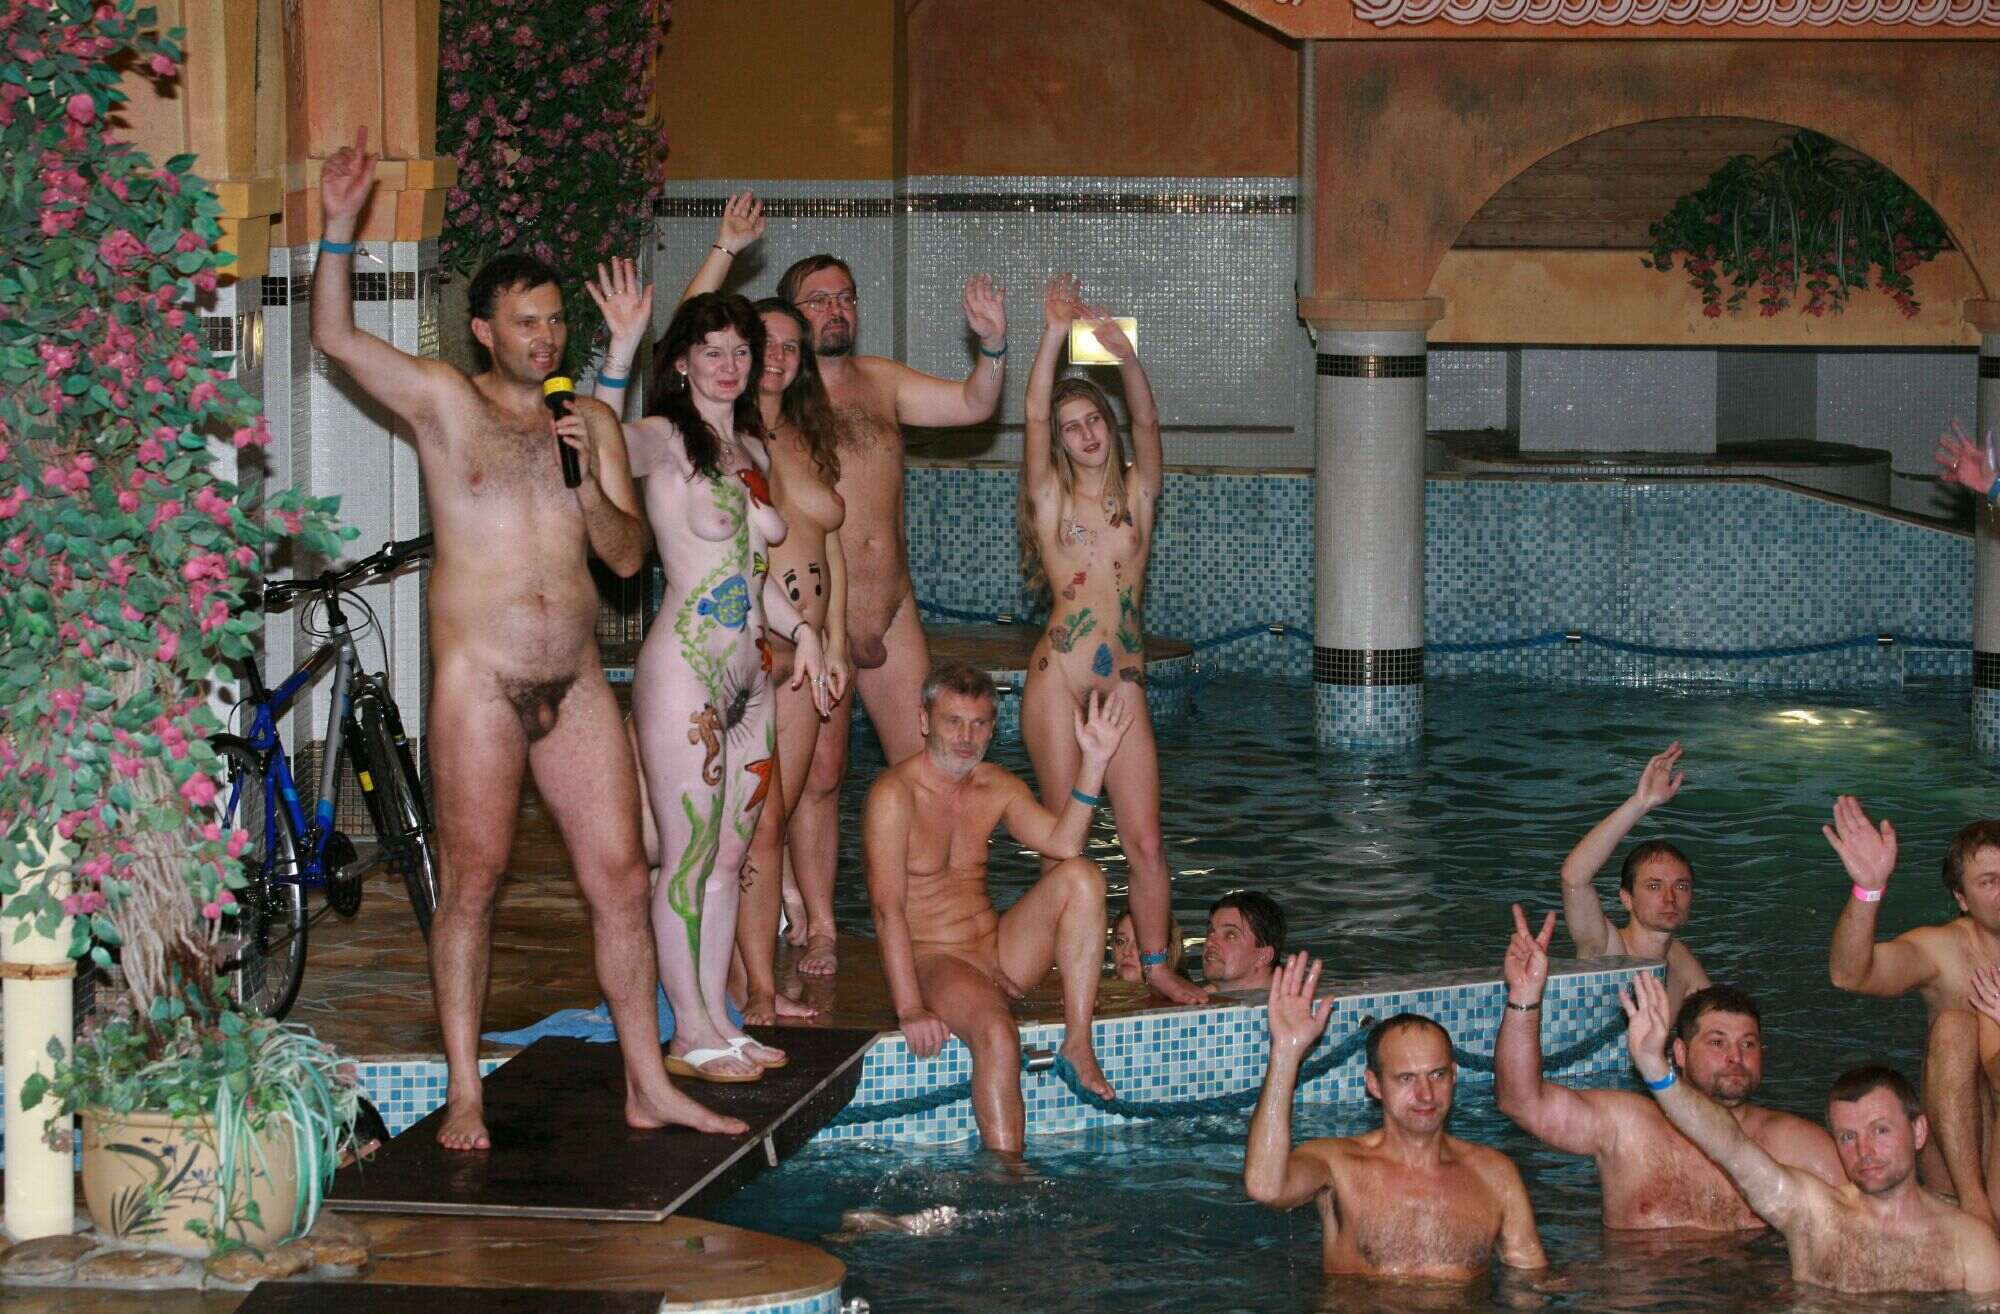 Contest of nudists - Miss 2008 EU Contest [Purenudism pics]